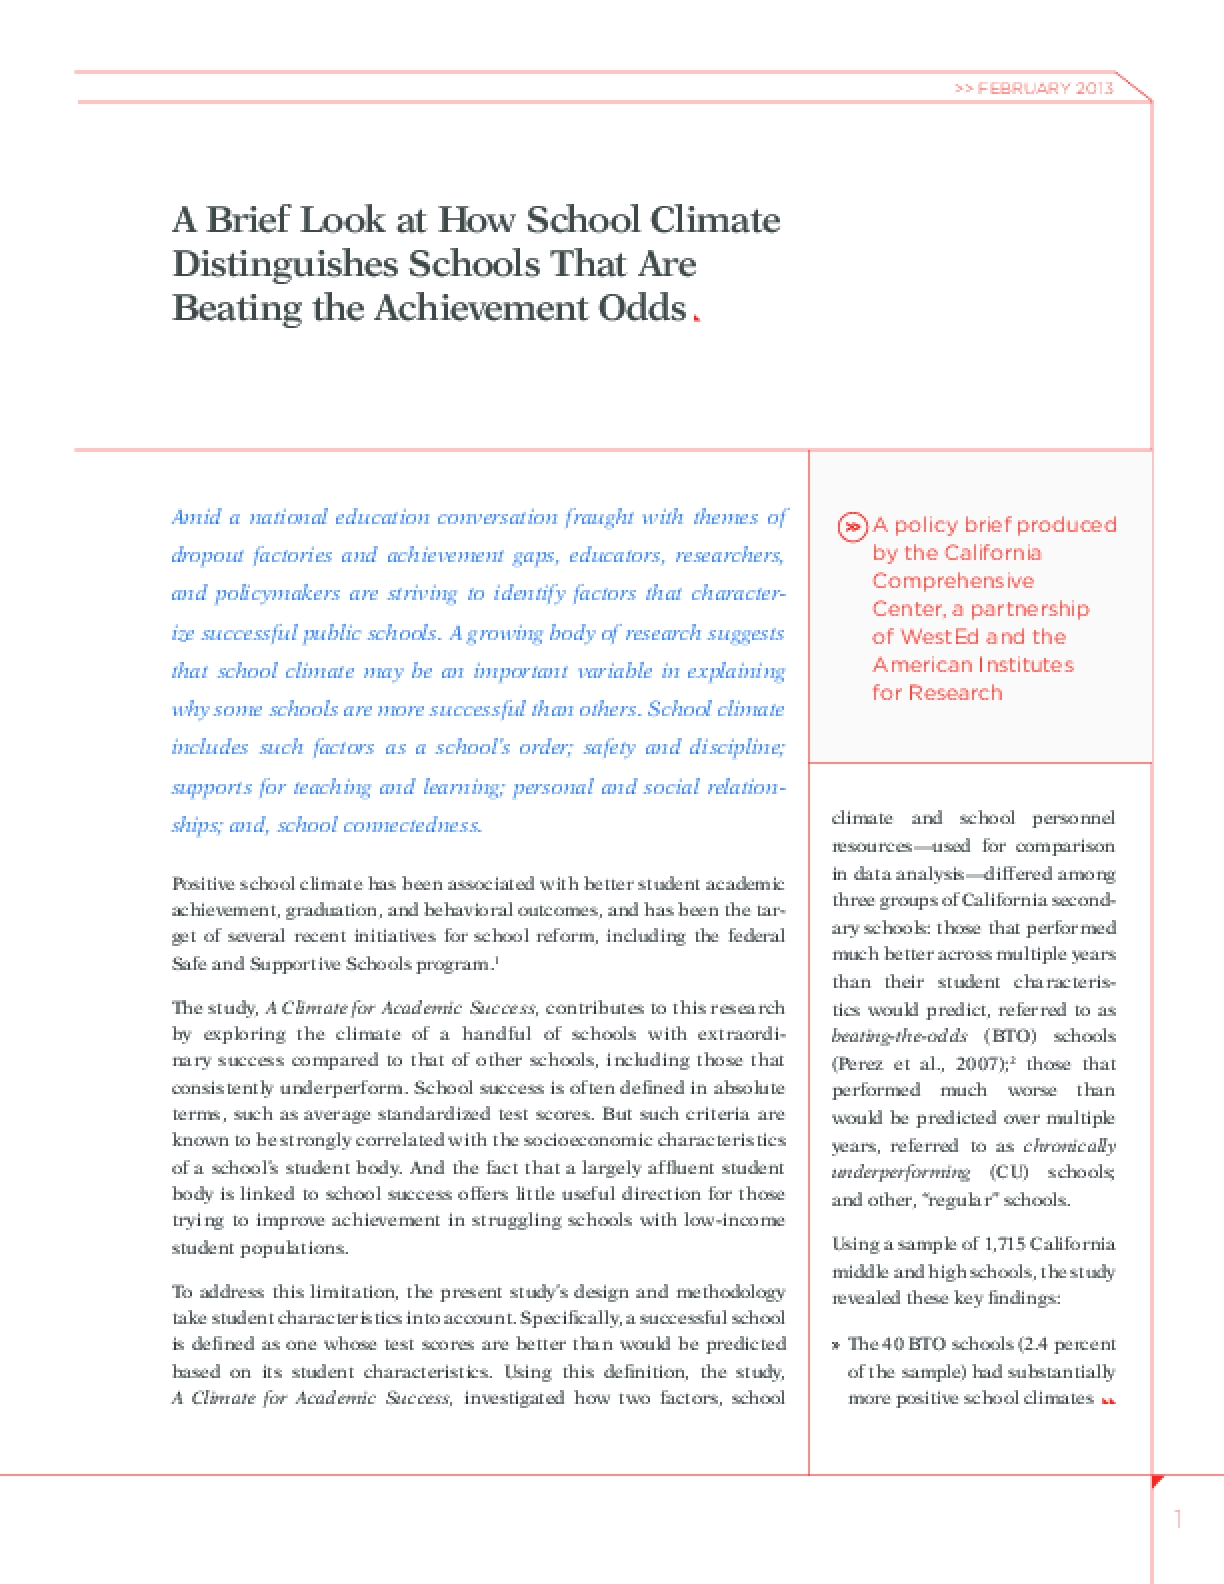 A Brief Look at How School Climate Distinguishes Schools That Are Beating the Achievement Odds